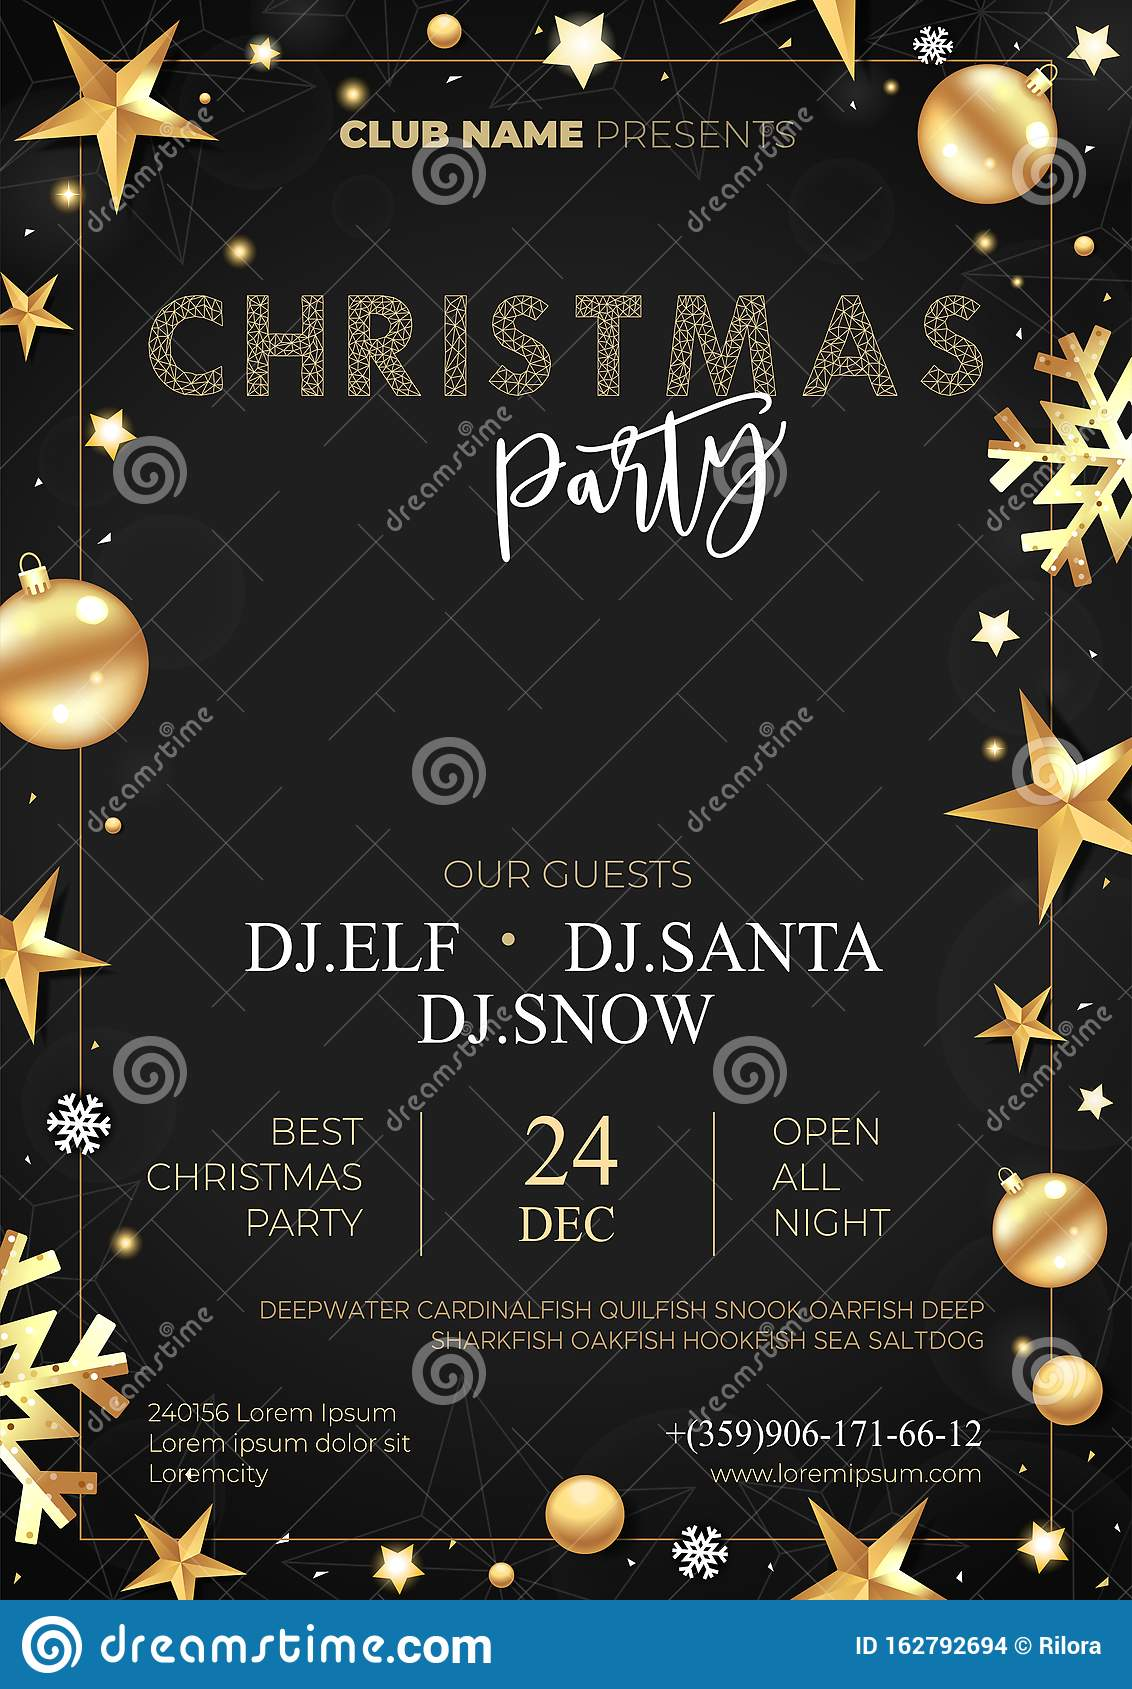 Party Poster Merry Christmas Holiday Club Invitation. Vector. Stock Vector  - Illustration of element, card: 162792694